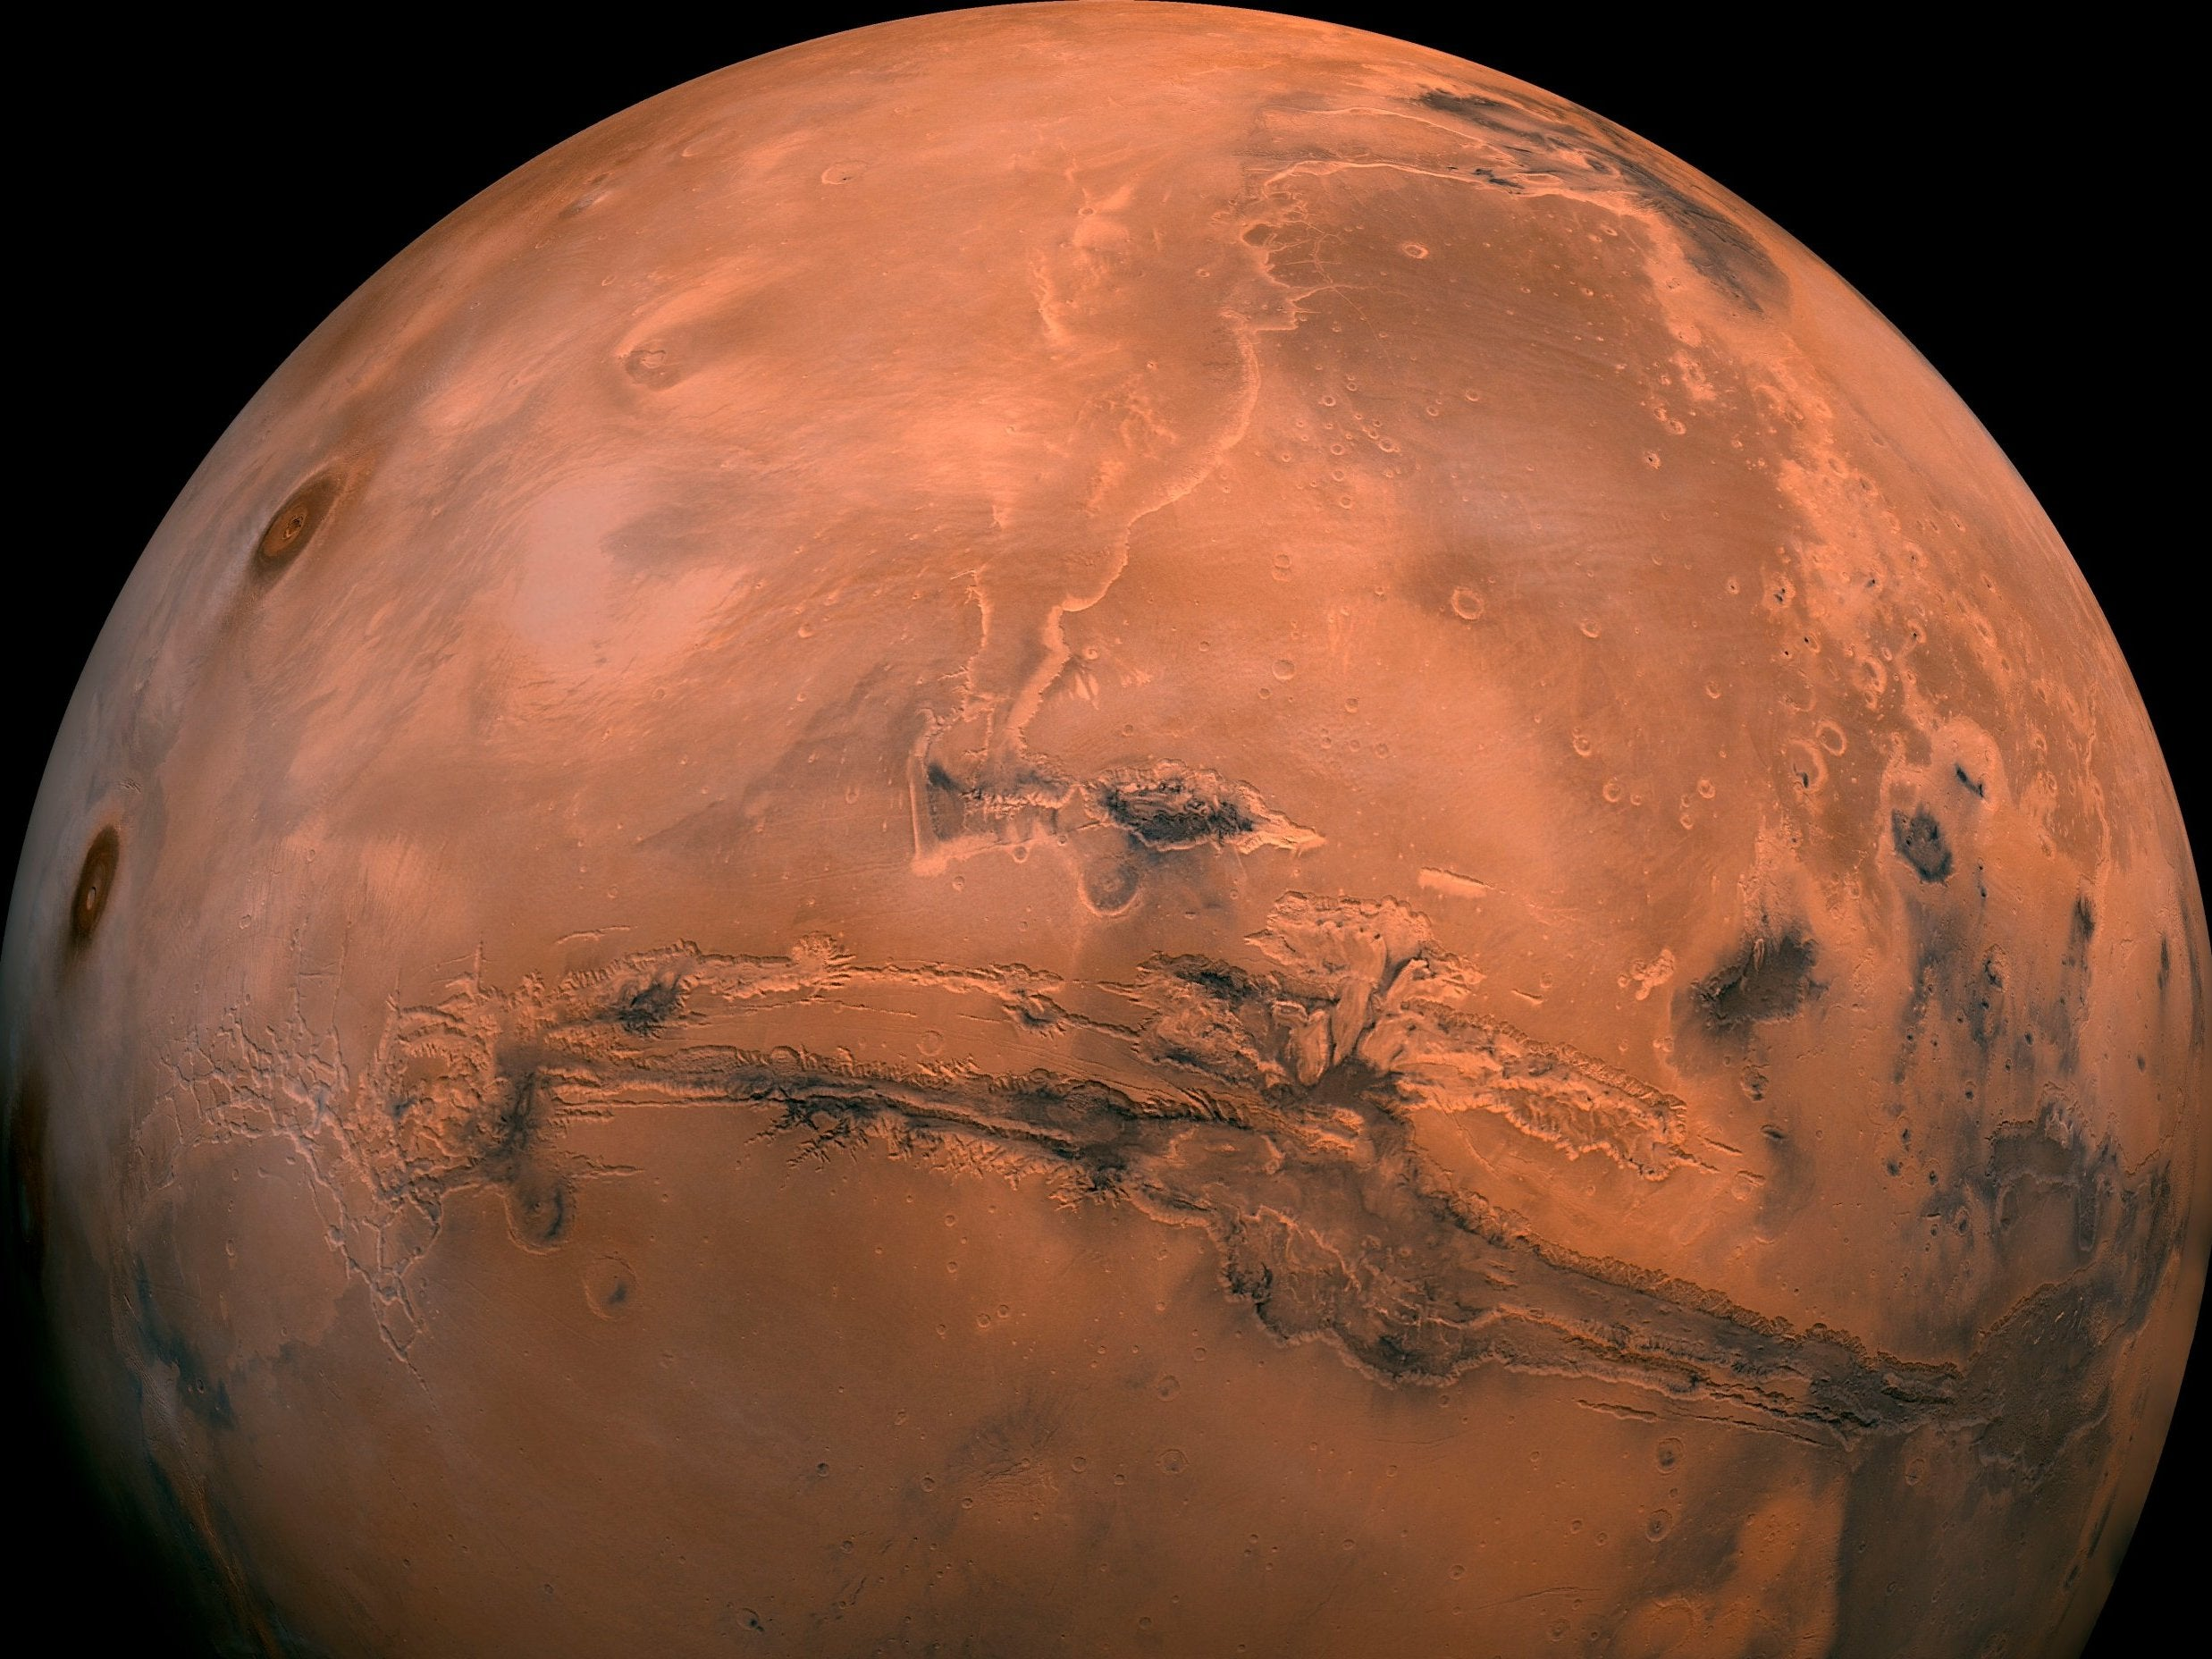 Sperm can survive in low gravity which could help establish colonies on Mars, study suggests